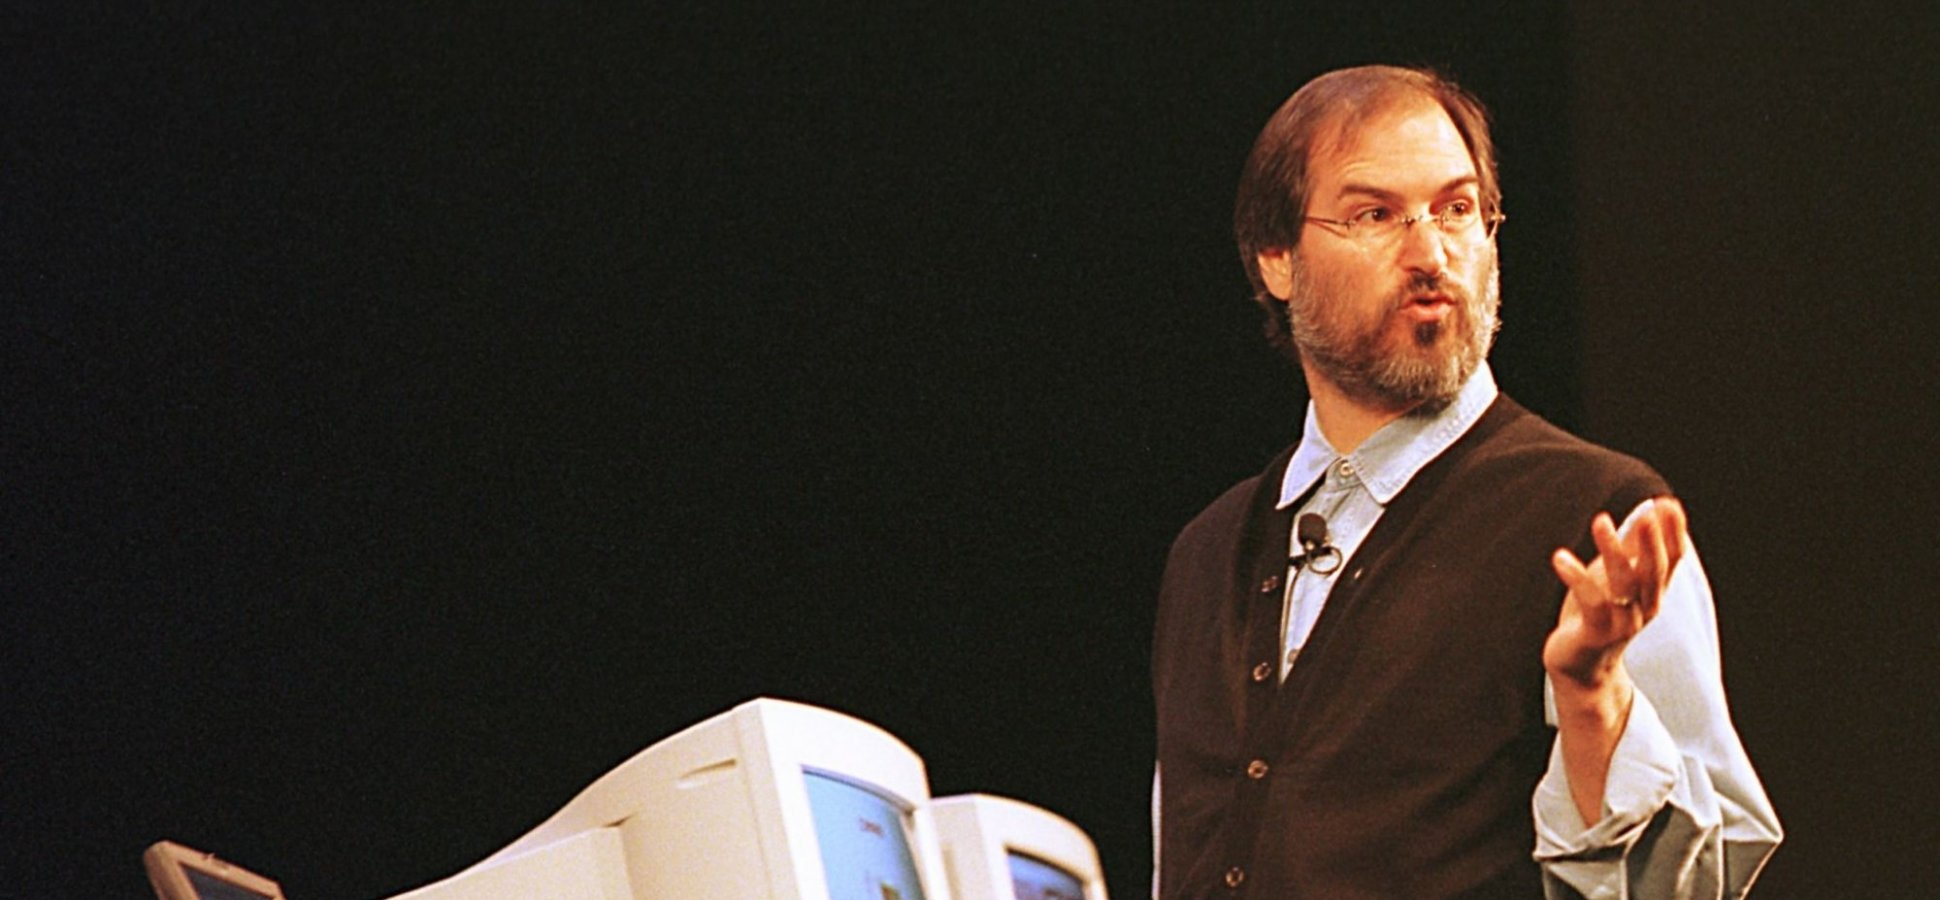 It Only Took Steve Jobs 5 Words to Give the Best Career Advice You'll Hear Today